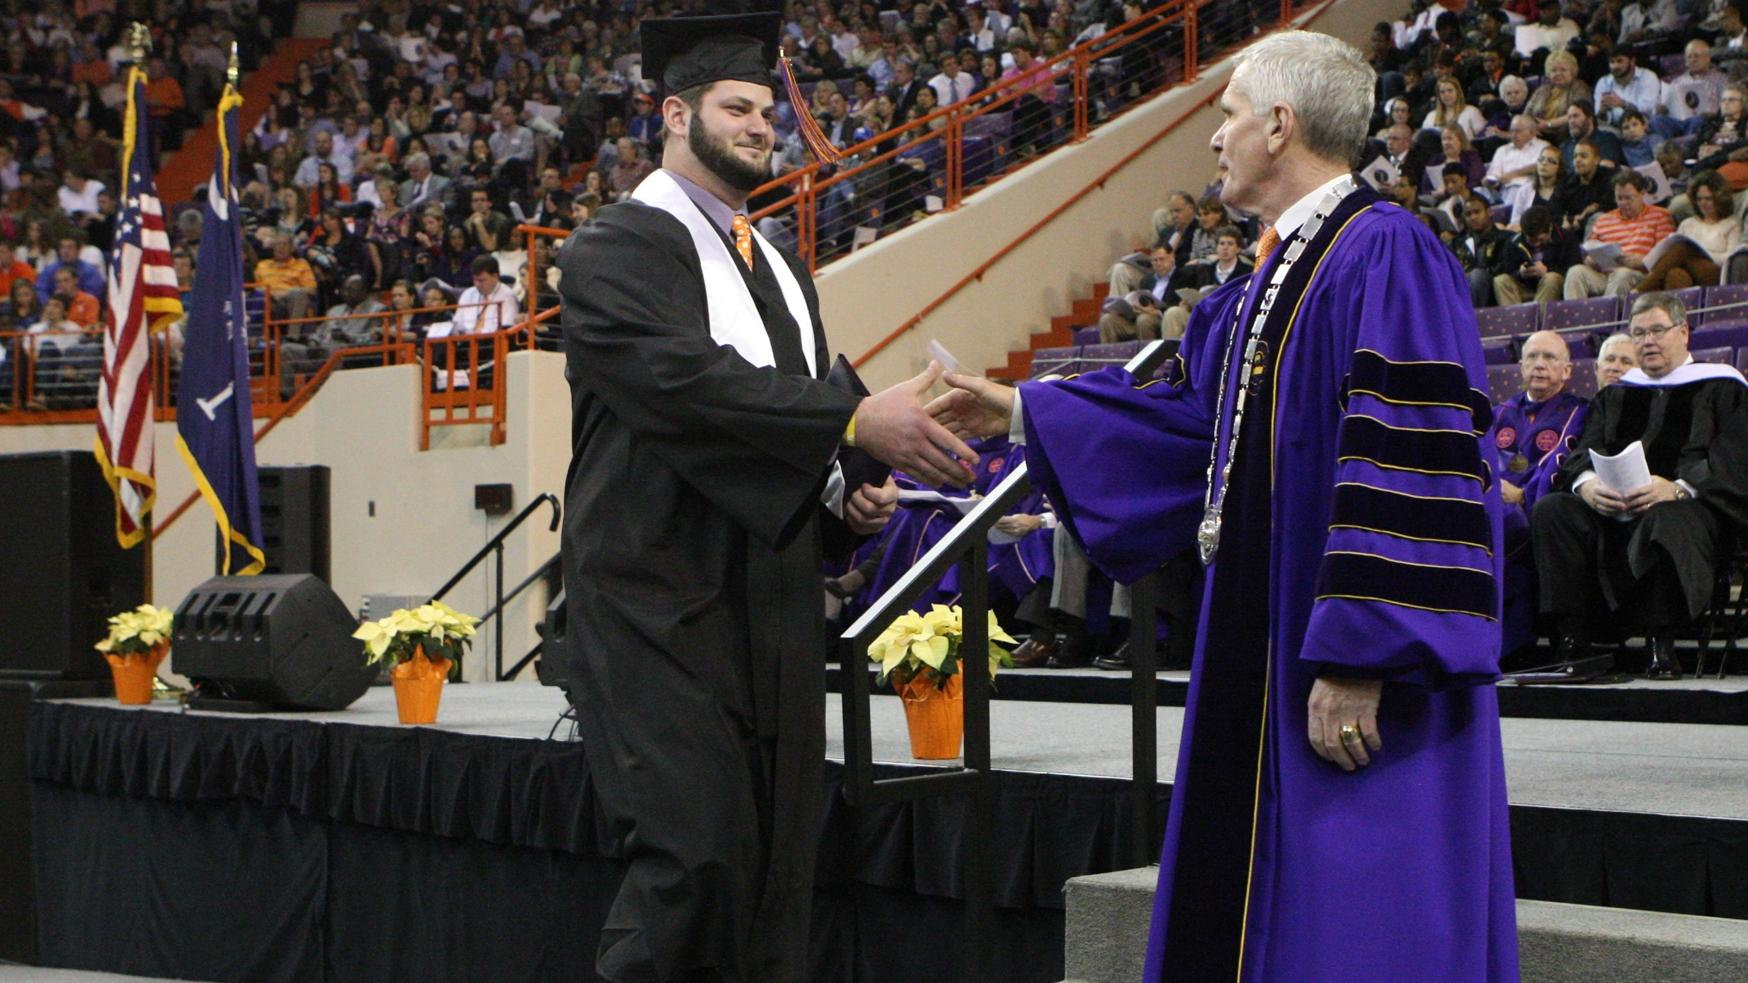 ACC Announces Academic Honor Roll for 2011-12